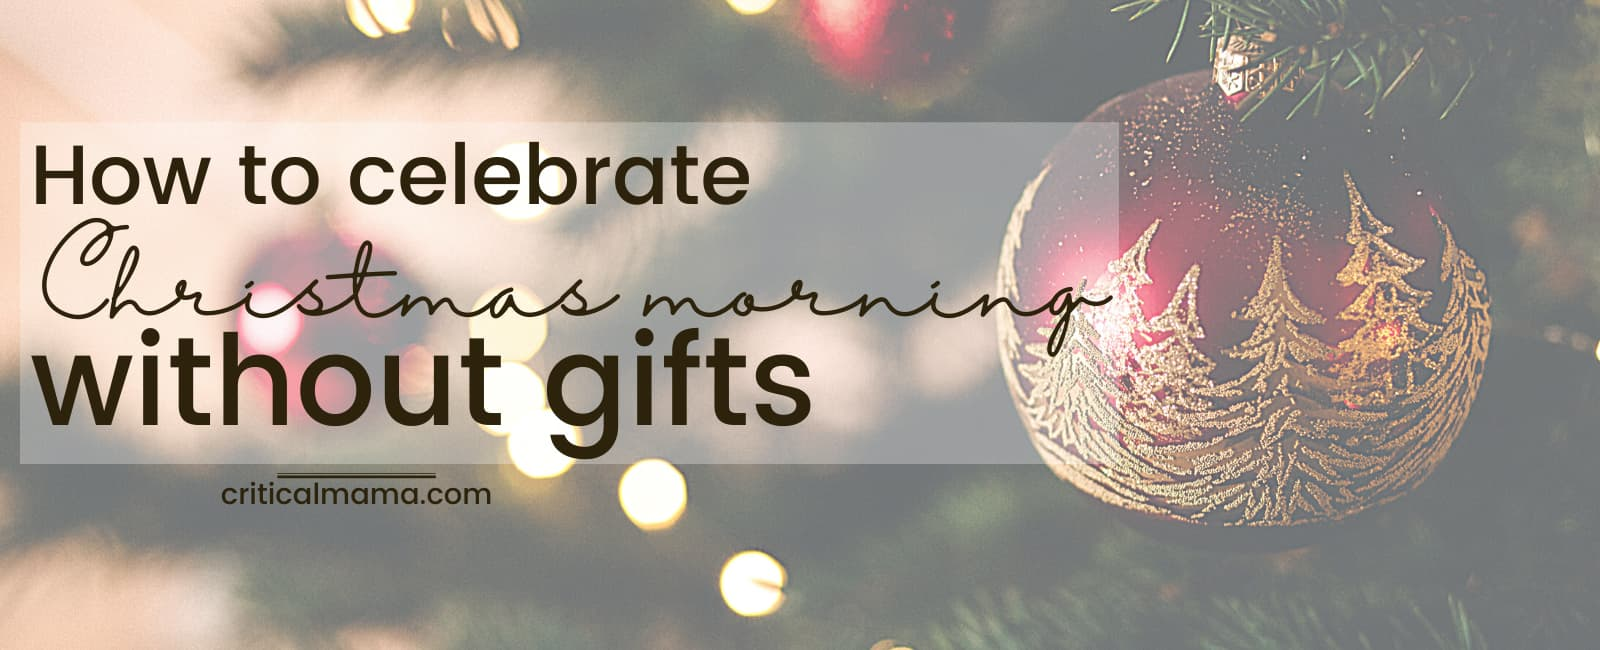 How To Celebrate Christmas Morning Without Gifts